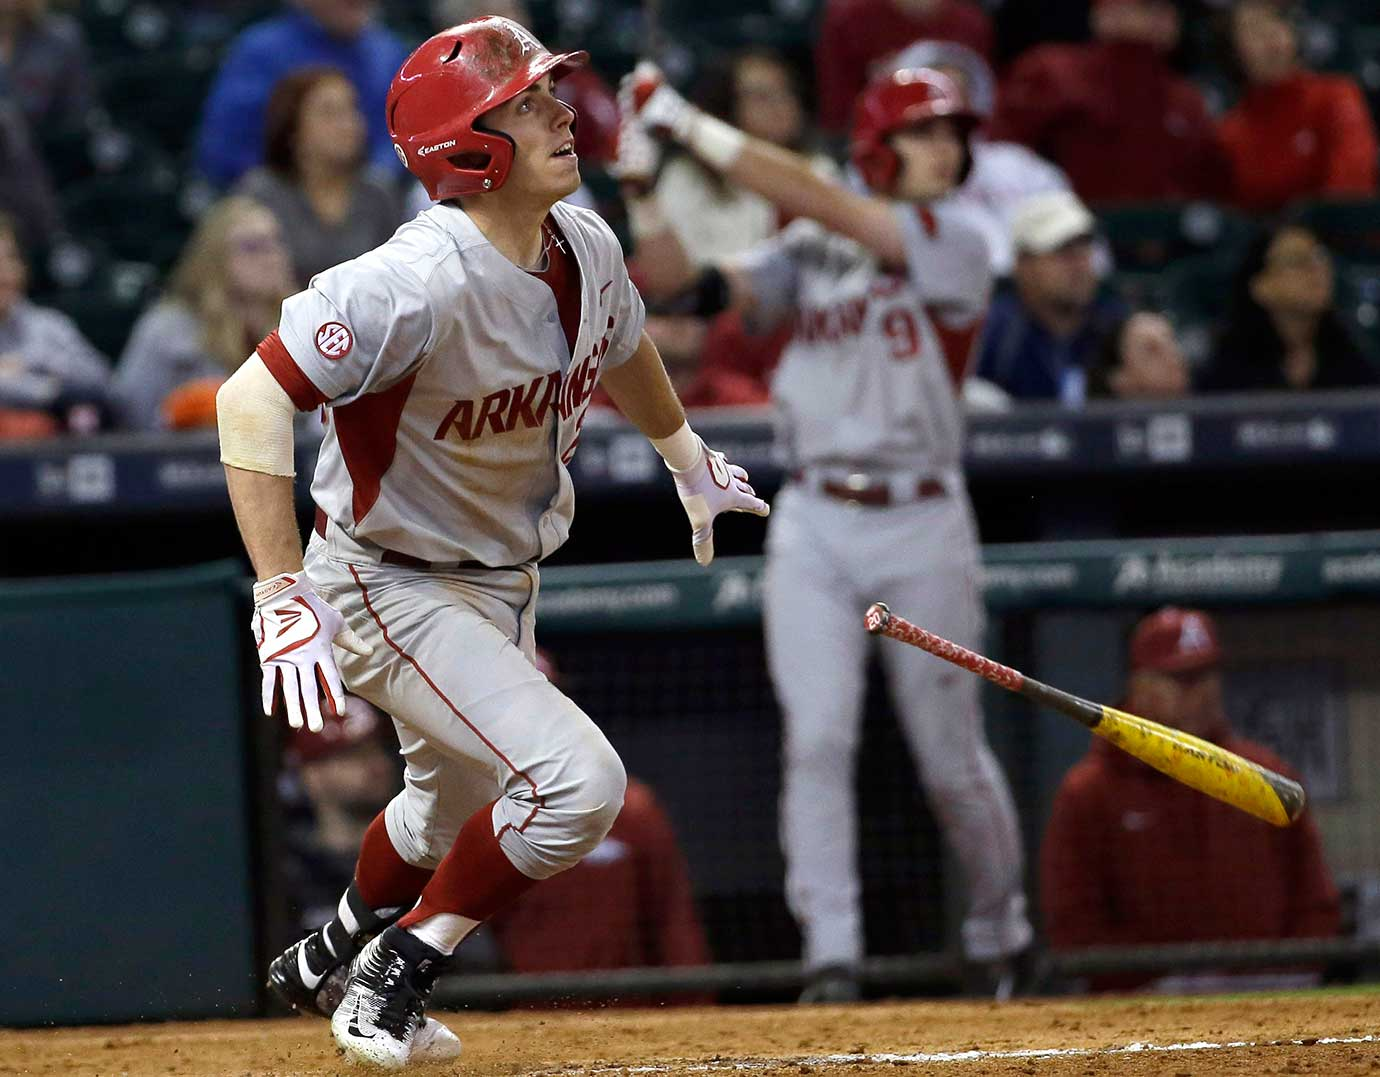 Carson Shaddy of Arkansas watches his sacrifice fly that scored Michael Bernal against Rice.